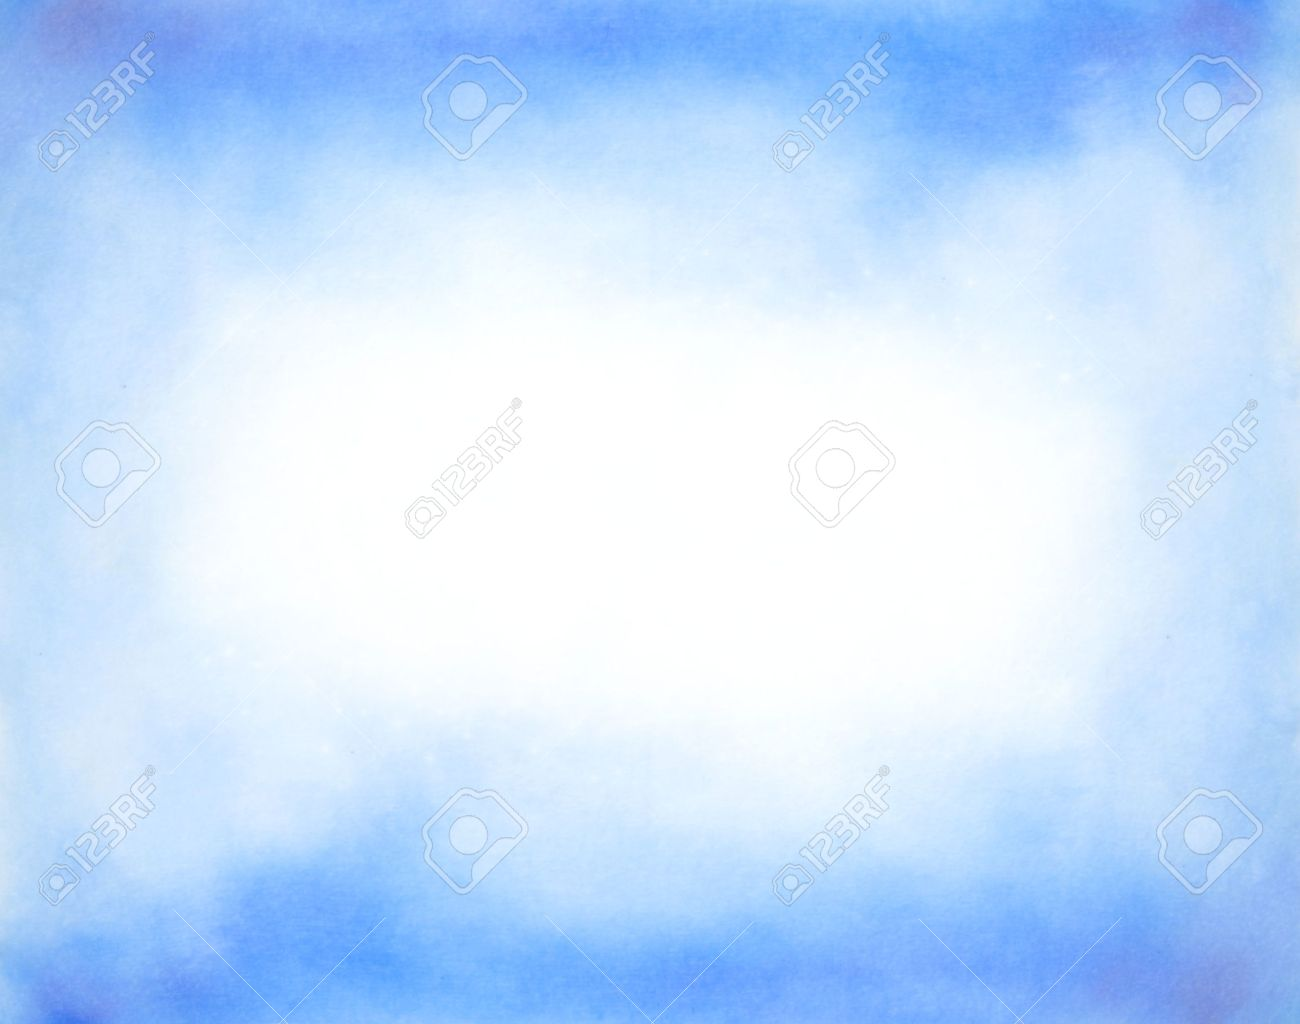 Abstract hand drawn watercolor background  blue sky and white clouds Stock Photo - 15098566